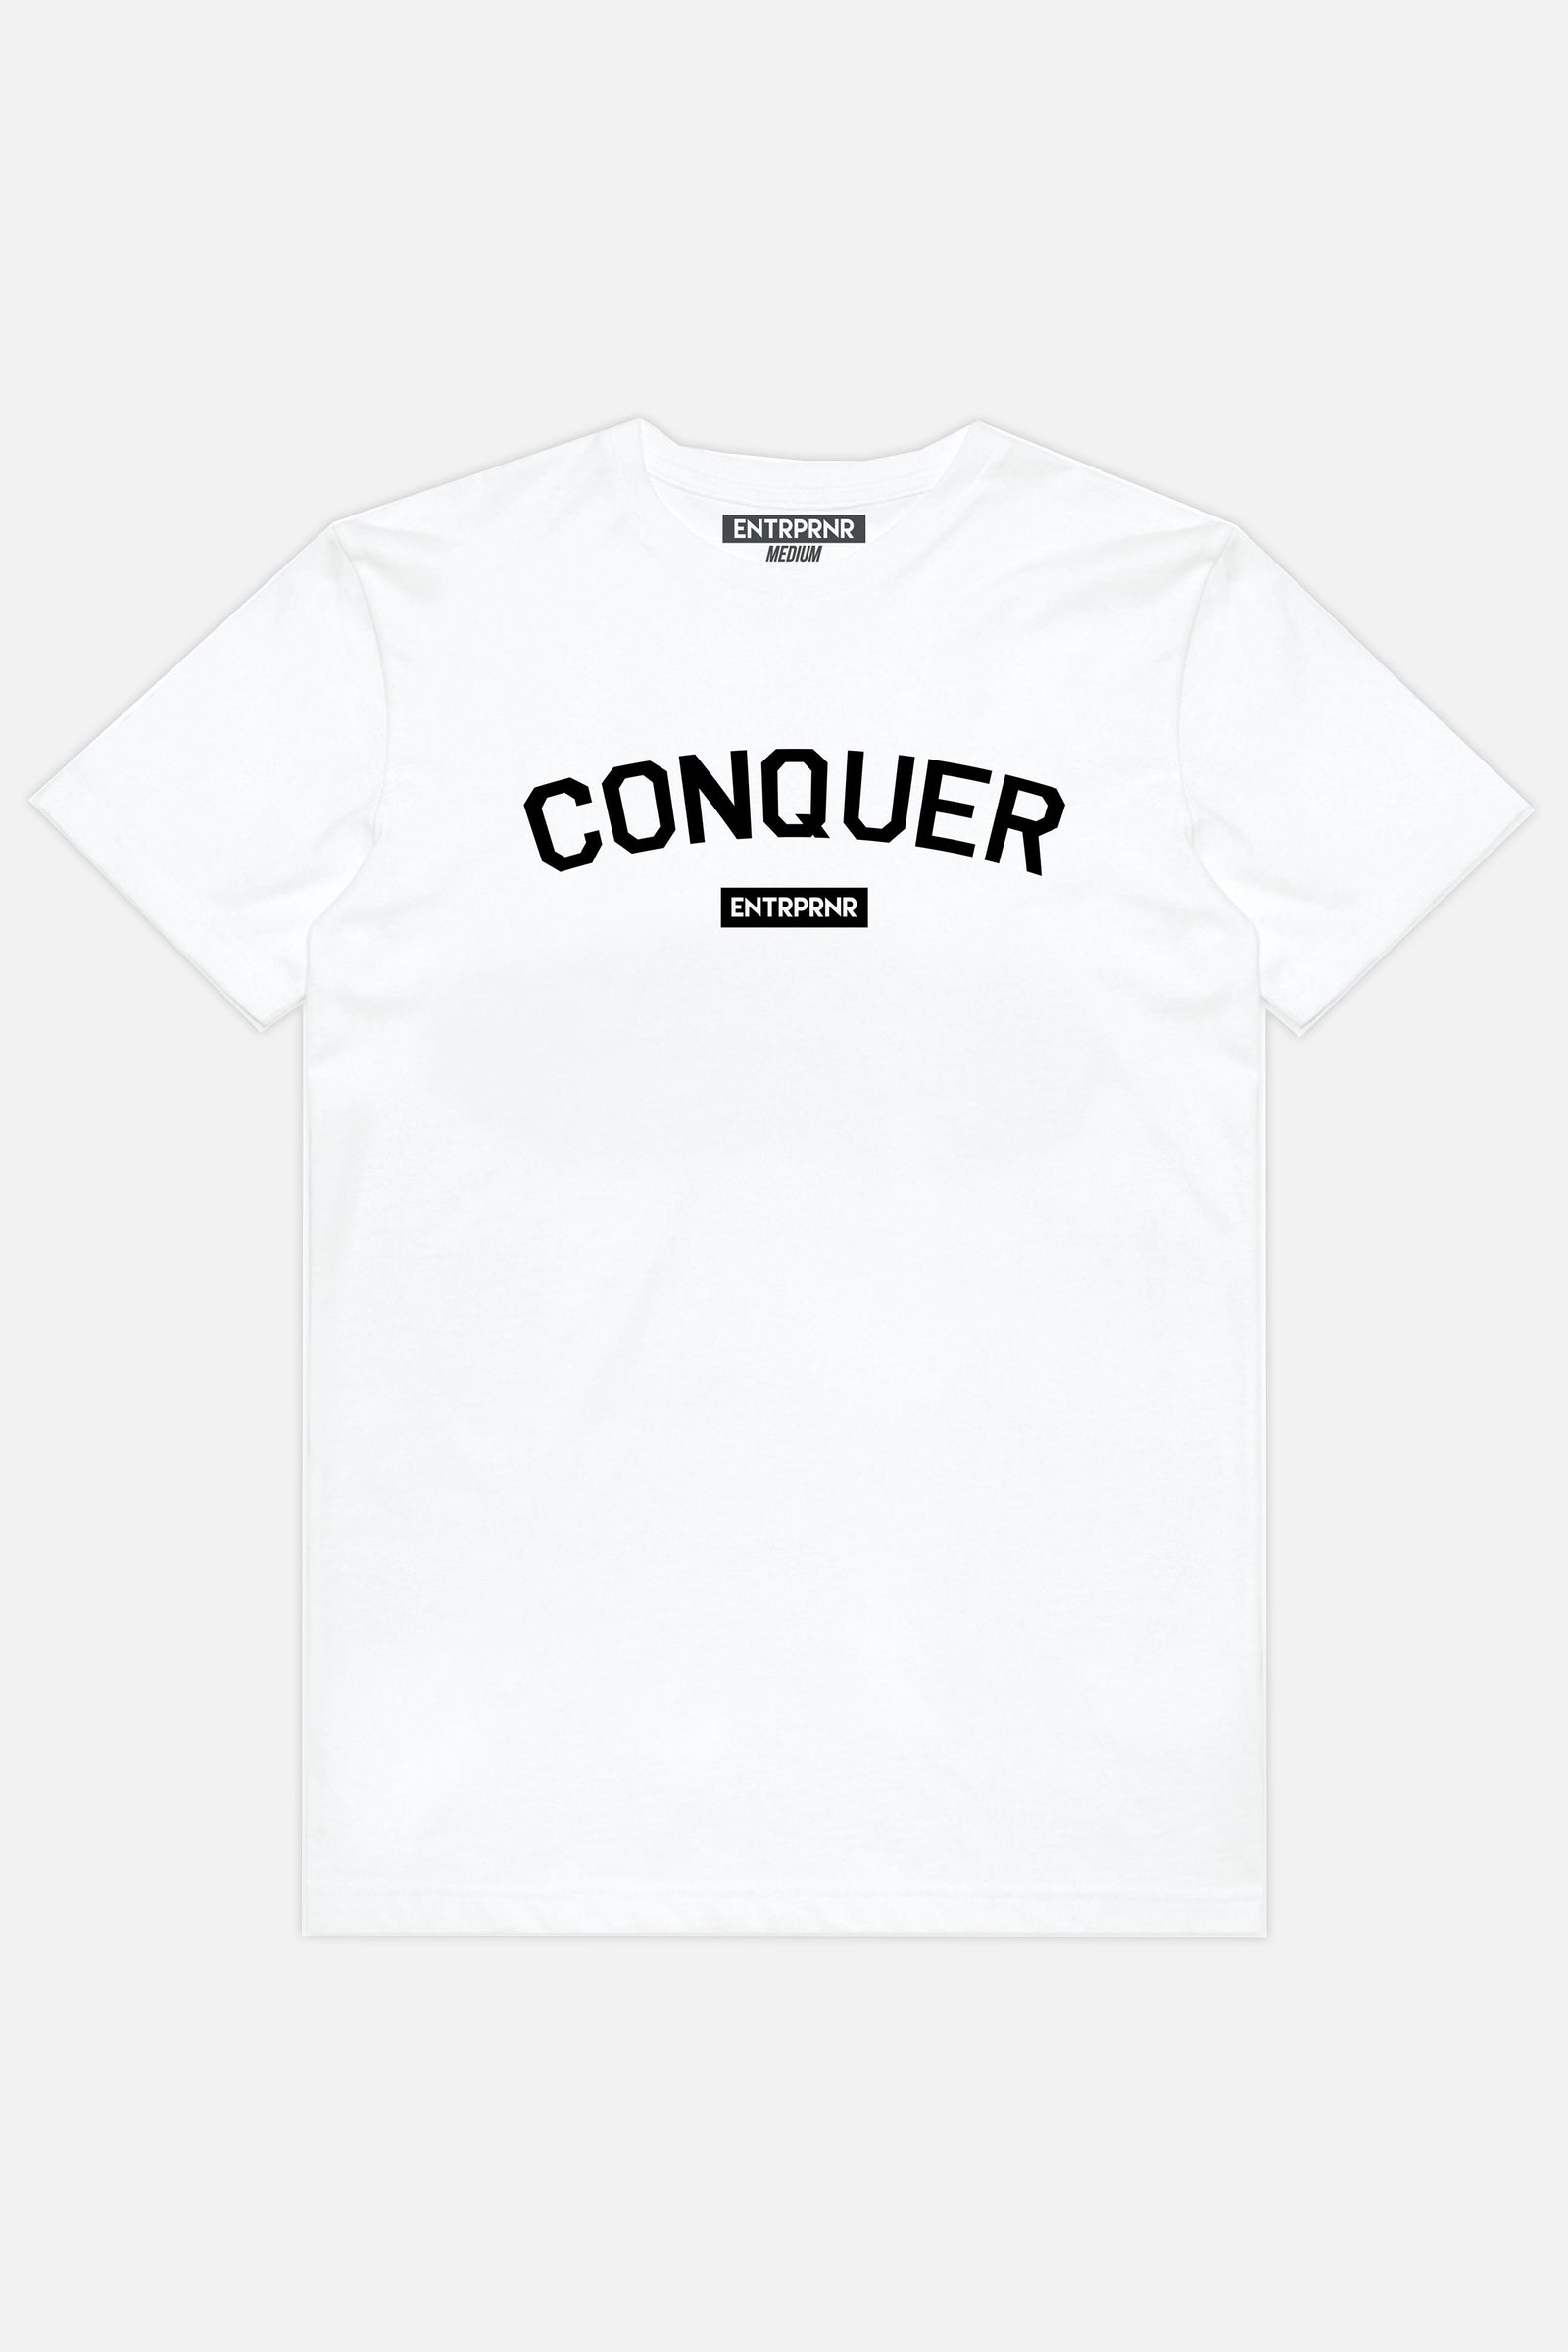 Conquer ENTRPRNR Tee – White - ENTRPRNR® | The Entrepreneur's Clothing Brand. | Stagnancy is the Enemy. Action is King.